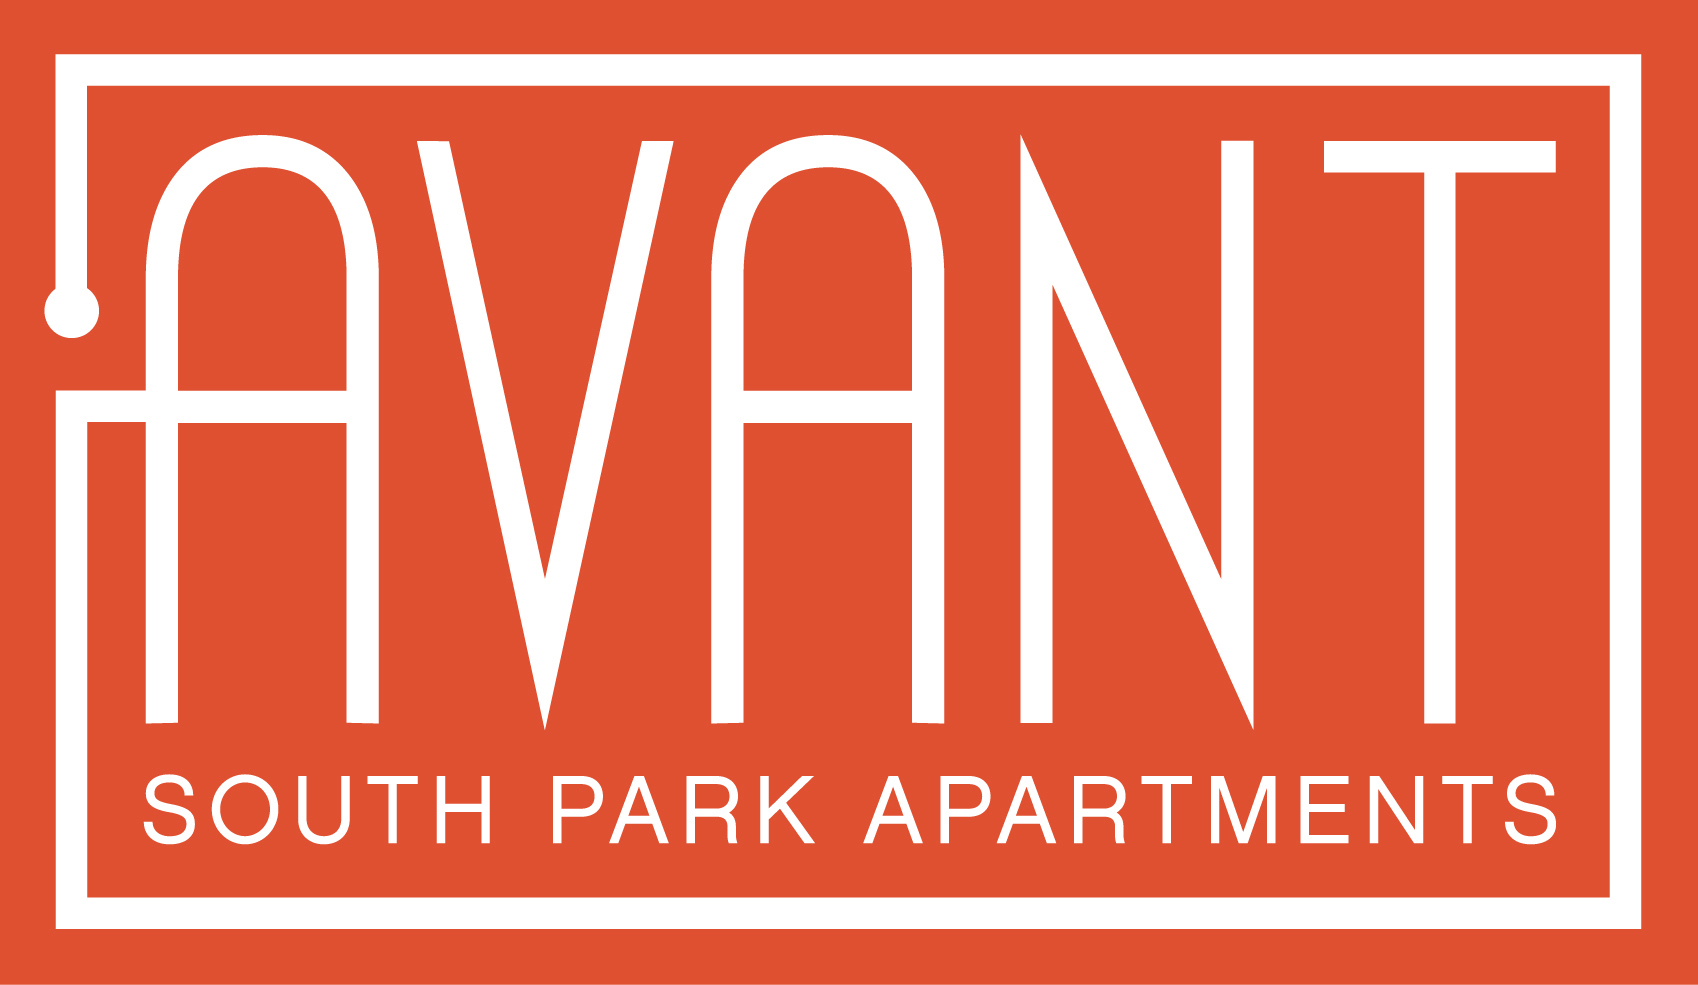 sunset cocktail party tickets the avant south park apartments on july 13 2014 in los angeles. Black Bedroom Furniture Sets. Home Design Ideas